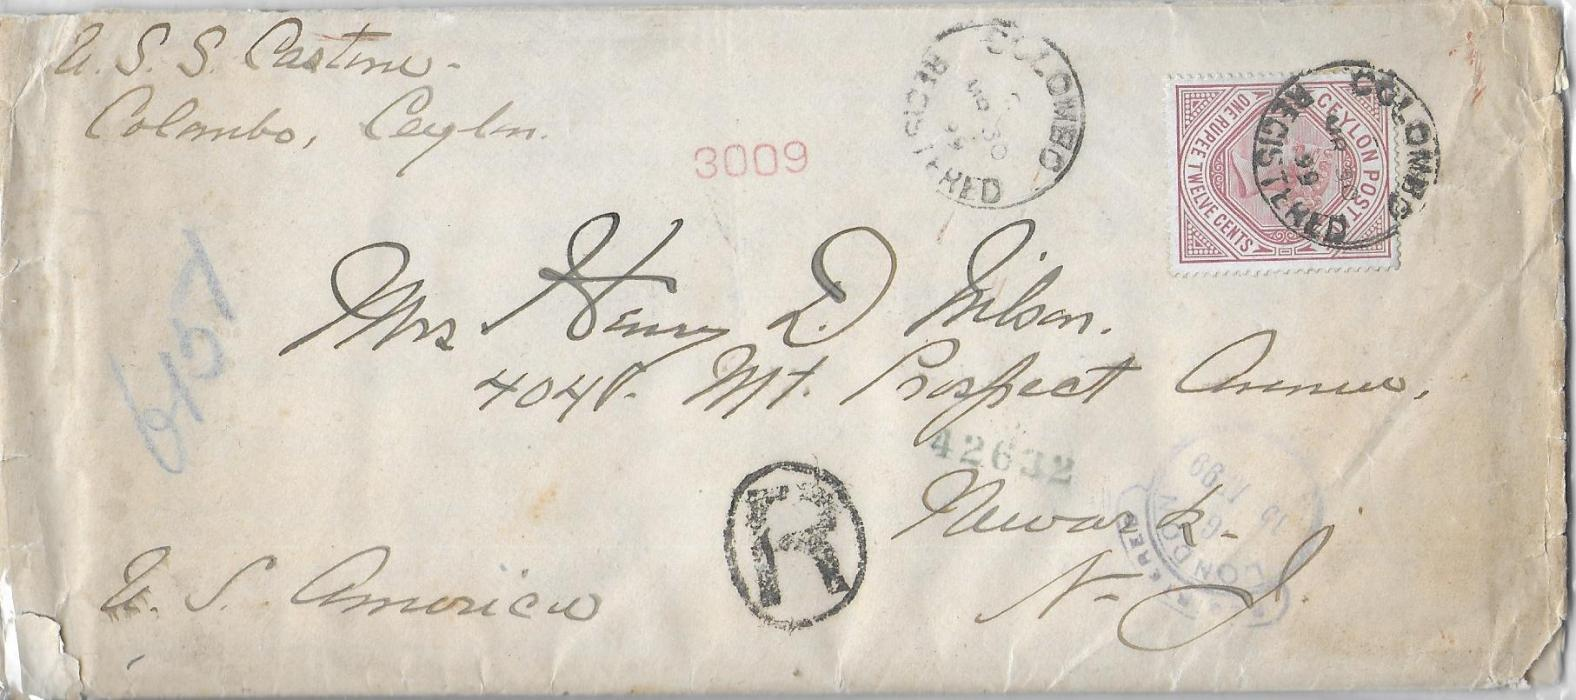 Ceylon 1899 thock, long cover with contents to New York bearing single franking 1r.12c. tied Colombo cds, London transit at base and arrival backstamp; a scarce single franking.685